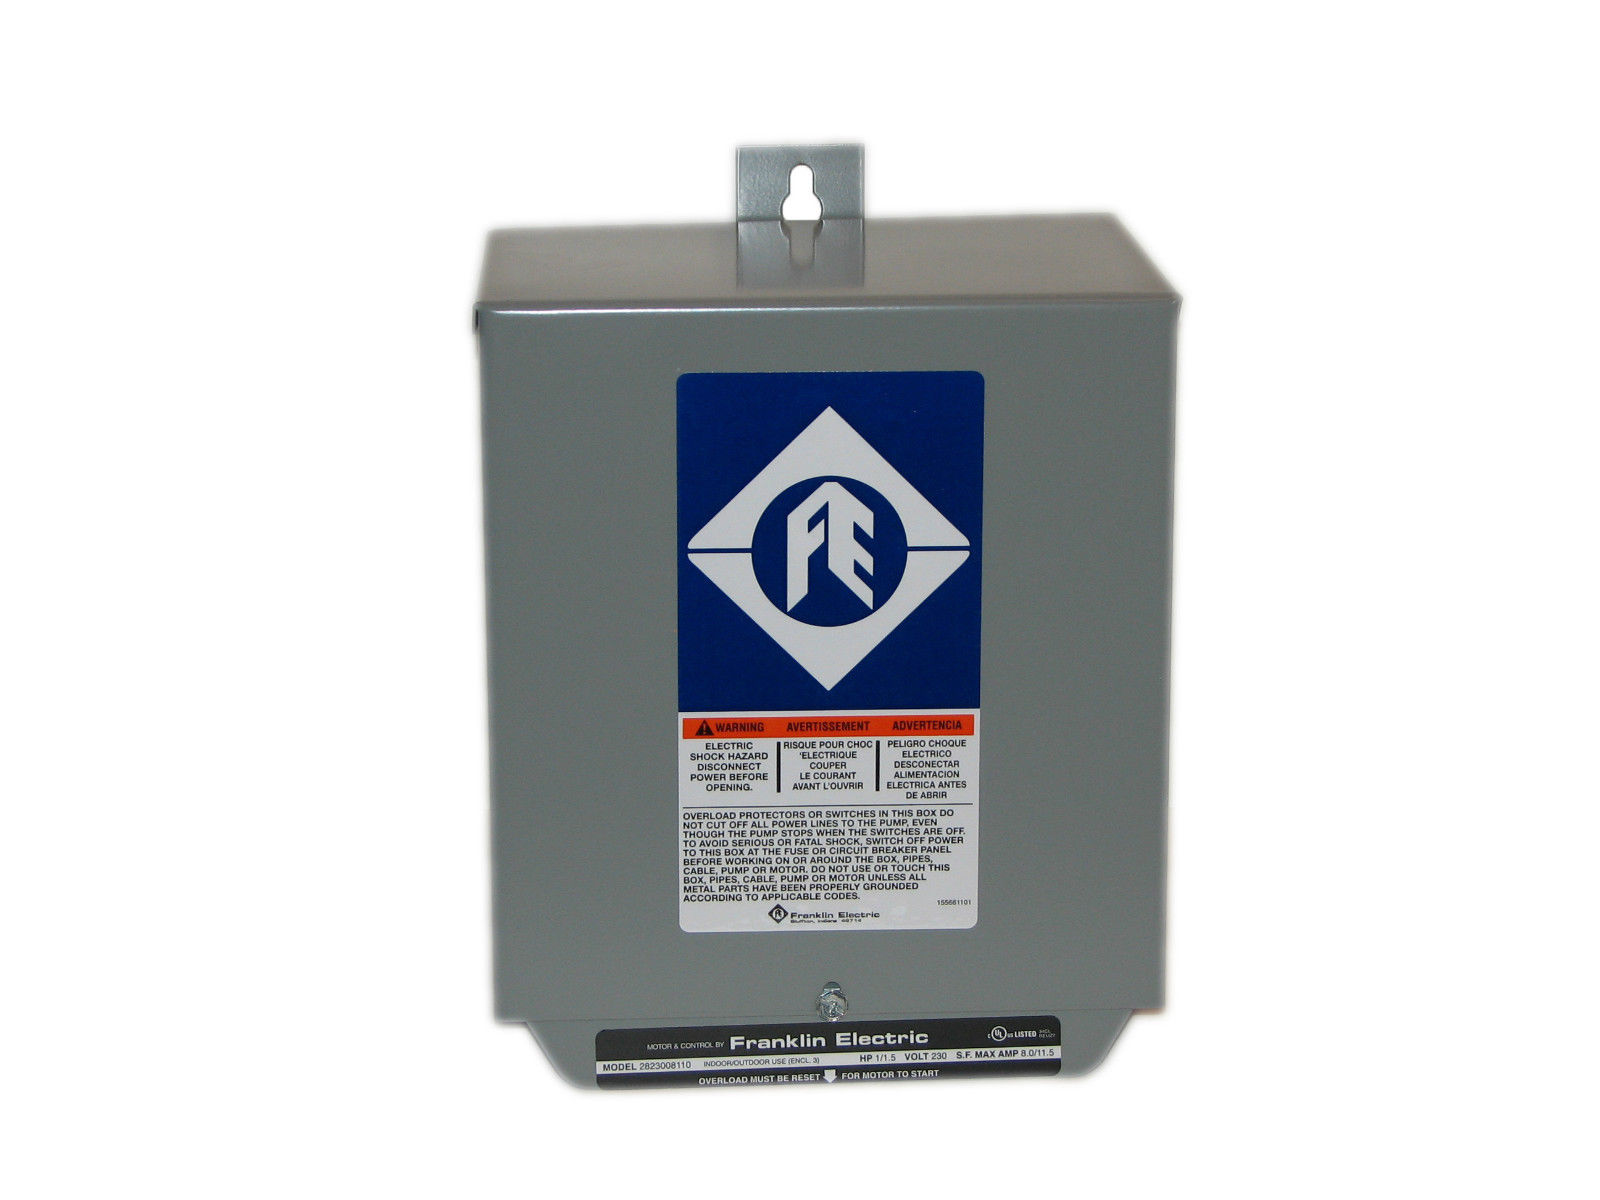 franklin 2823508110 4 3 wire control box 1 5 hp 220v 50hz 1ph franklin 2823508110 4 3 wire control box 1 5 hp 220v 50hz 1ph